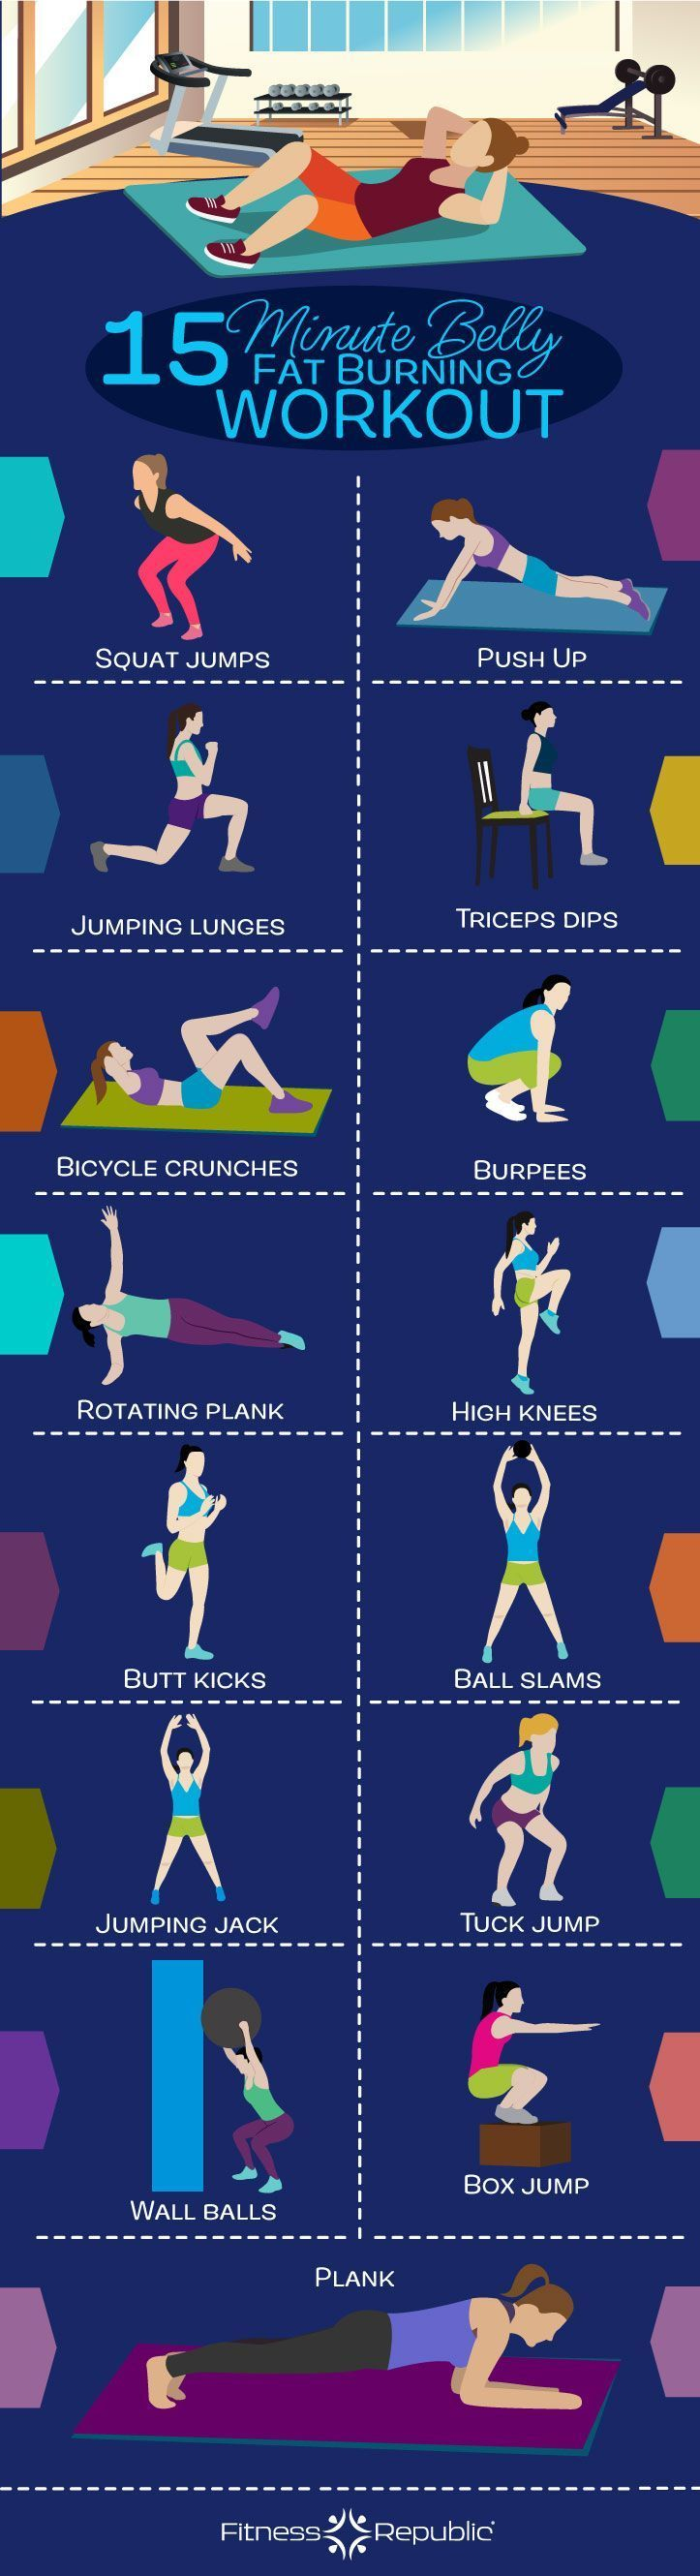 15-Minute Belly Fat Burning Workout | Fitness Republic #FatBurningFoods